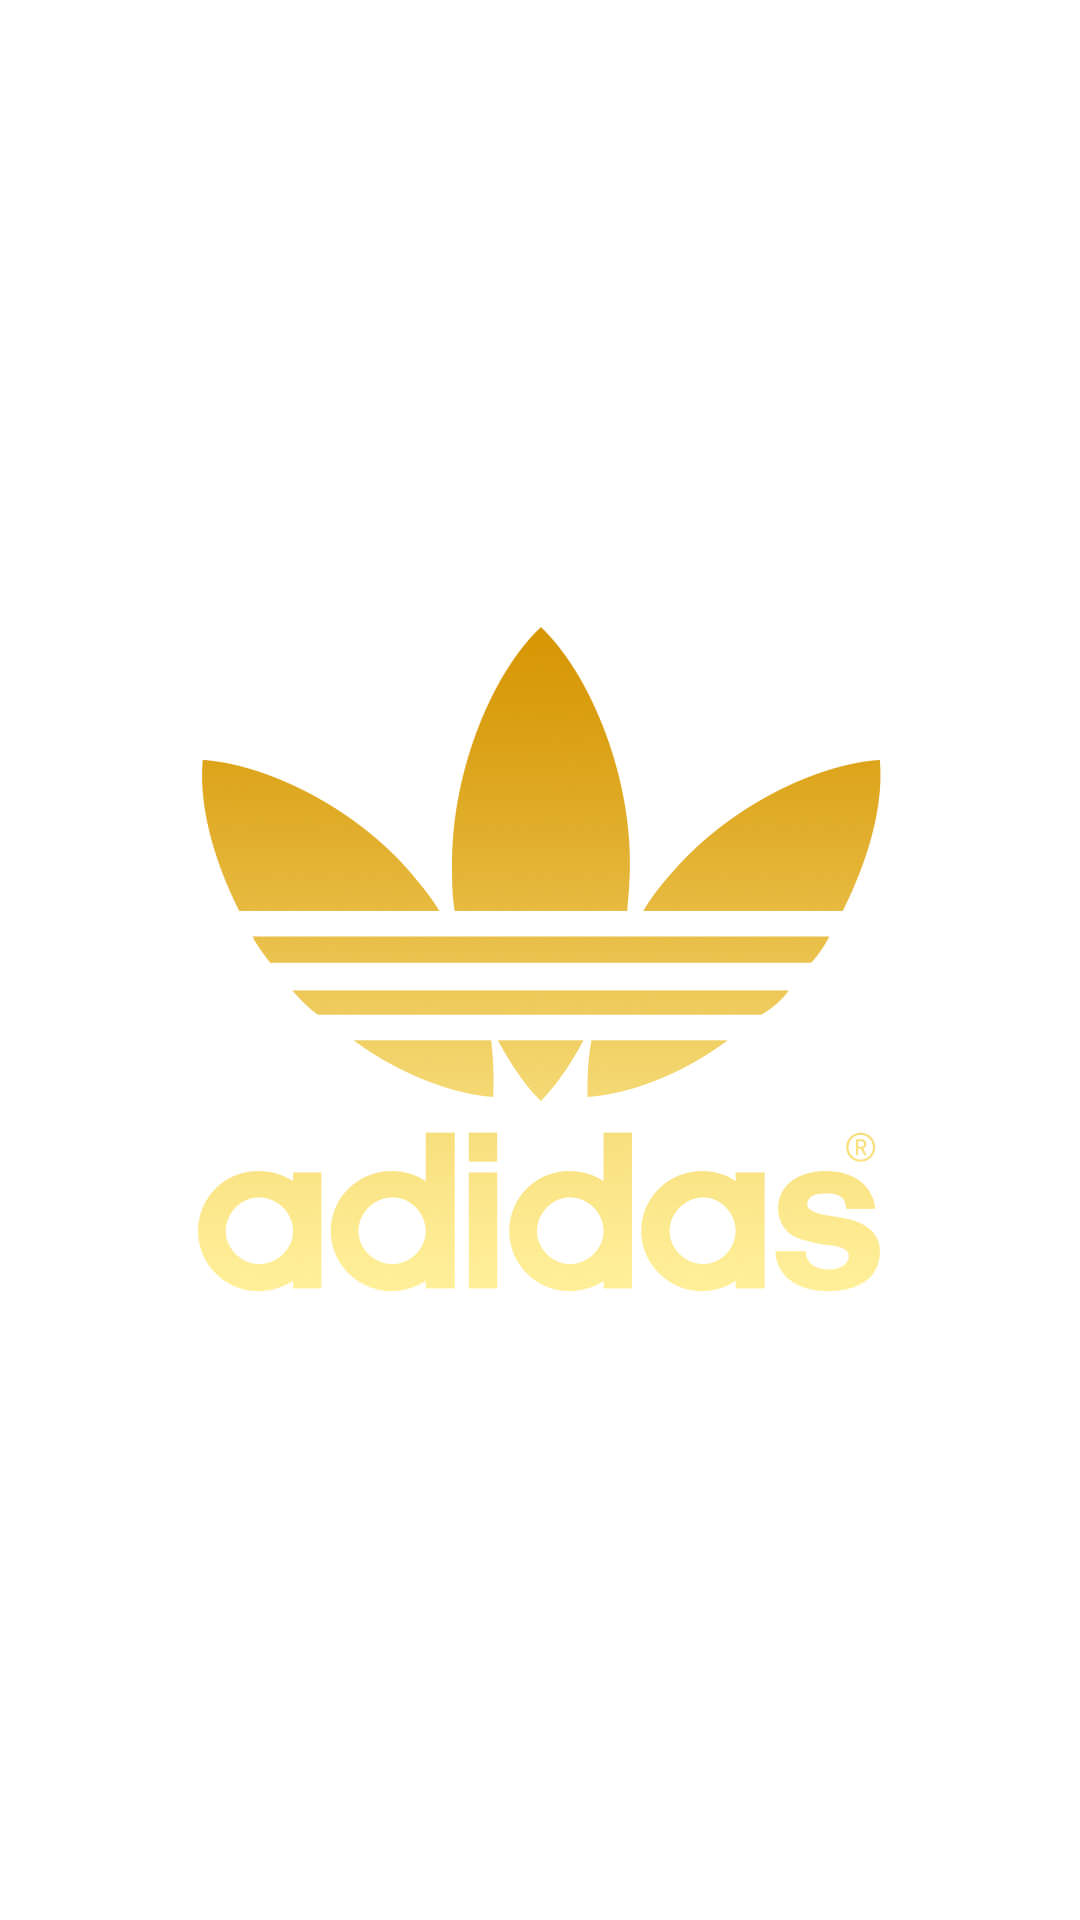 adidas21 - 25 adidas HQ Smartphone Wallpaper Collection